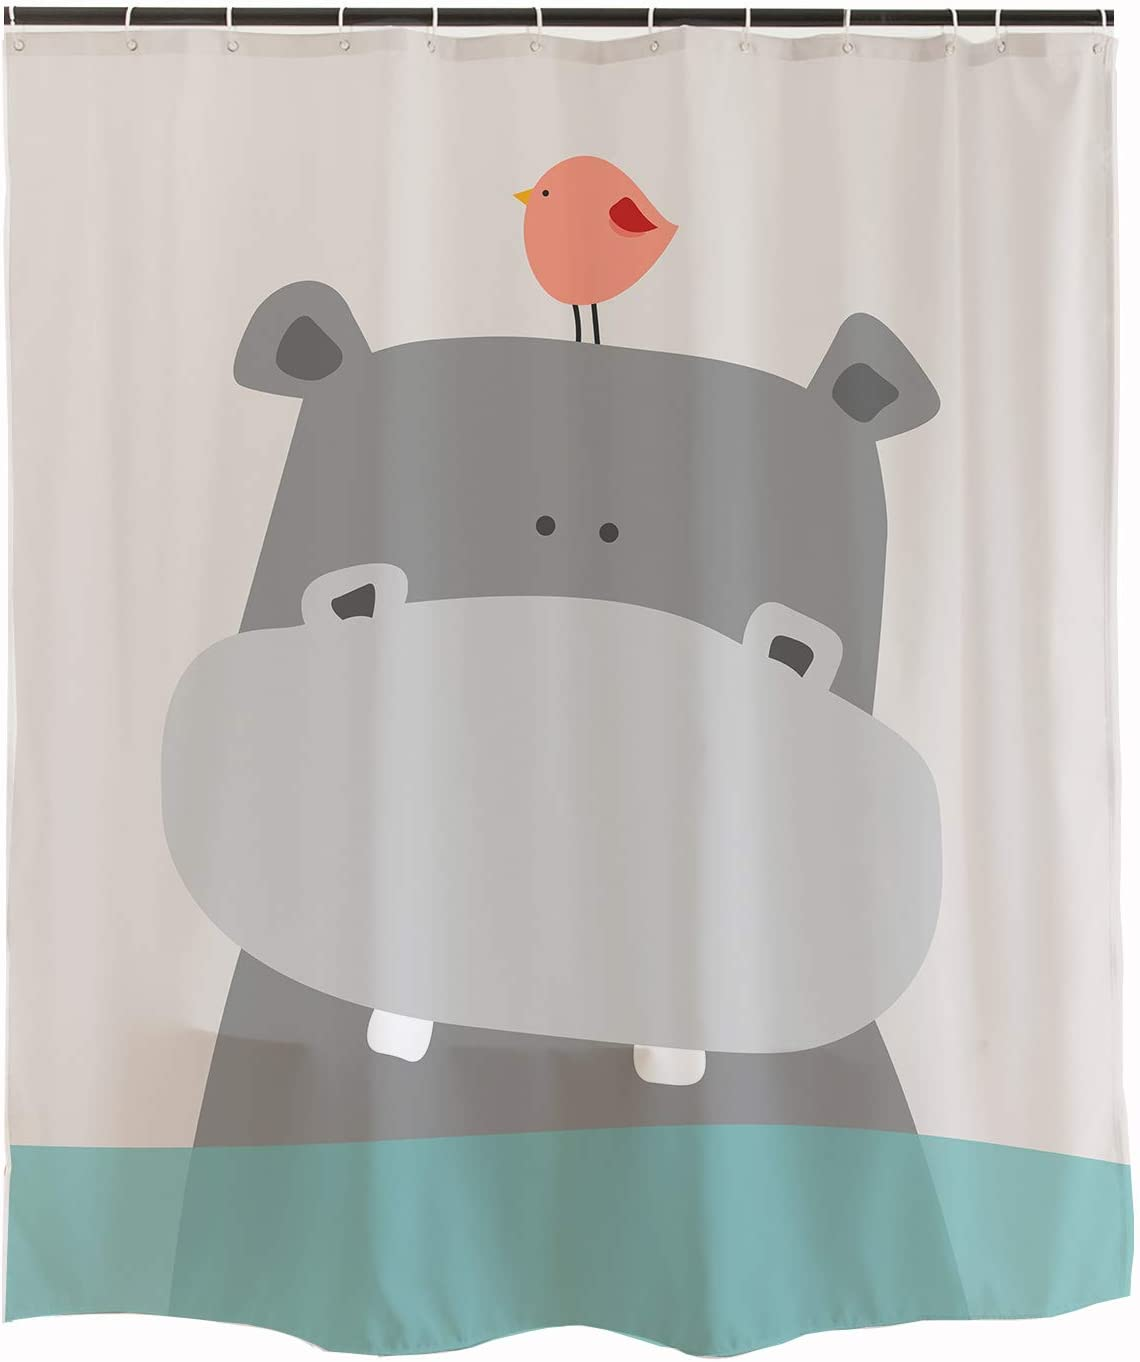 Ofat Home Cute Hippo Kids Shower Curtain 72x72 Inch Shower Curtain Teal White Grey Animal Baby River Horse Bird Ocean Fabric Shower Curtains For Bathroom Sets With Hooks Amazon Ca Home Kitchen